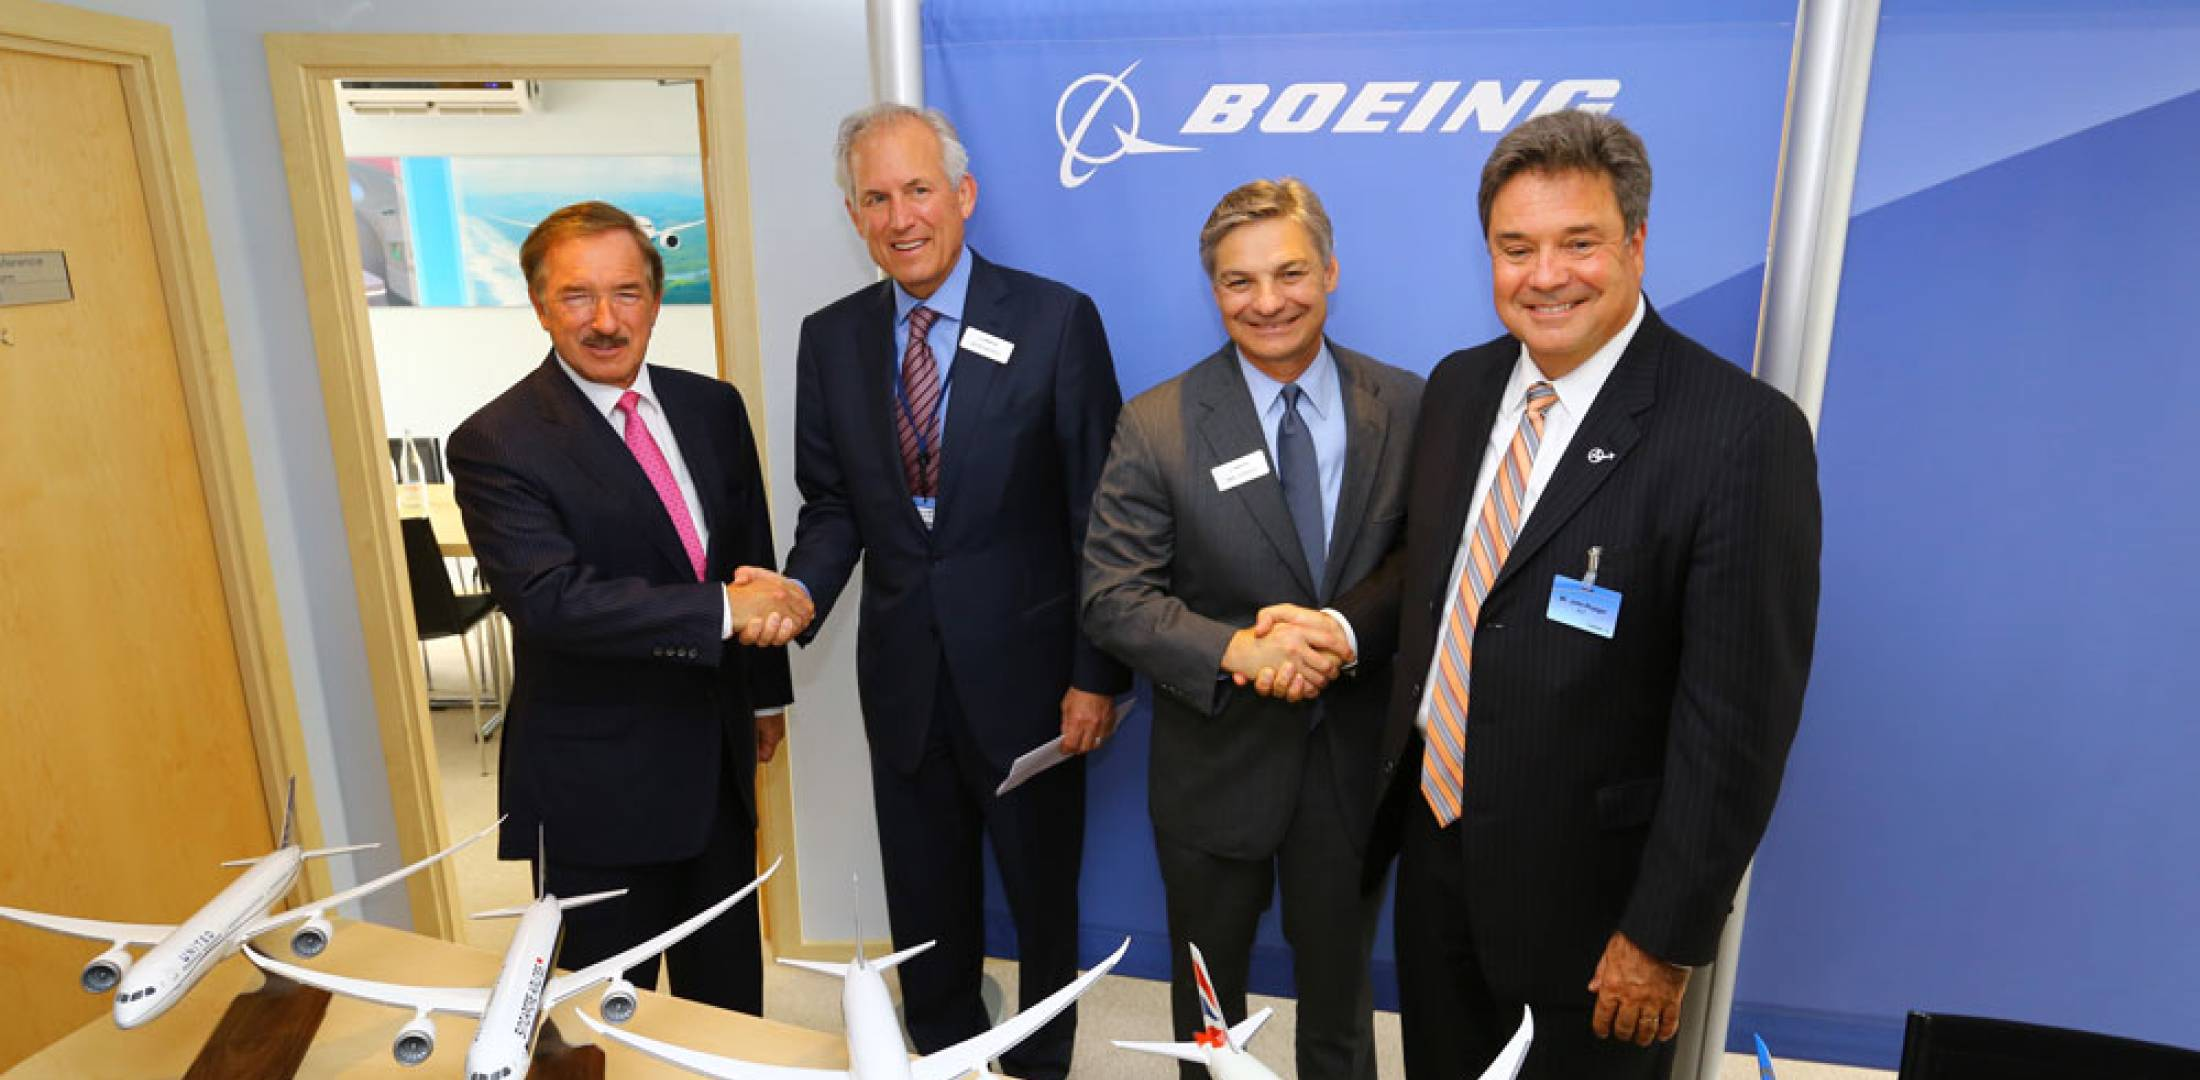 (l-r) Air Lease Corp. chairman and CEO Steven Udvar-Hazy, Boeing chairman and CEO Jim McNerney, Boeing Commercial Airplanes president and CEO Ray Conner and Air Lease COO John Plueger.